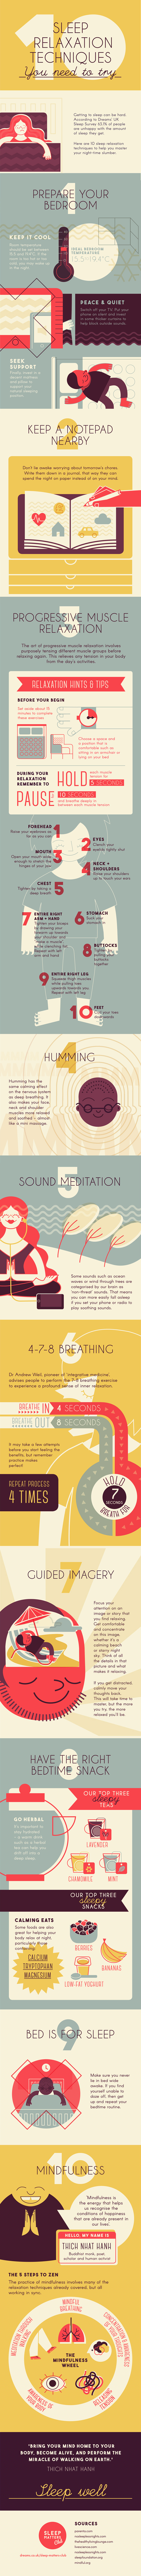 The Ultimate Guide To Sleep Relaxation - Infographic